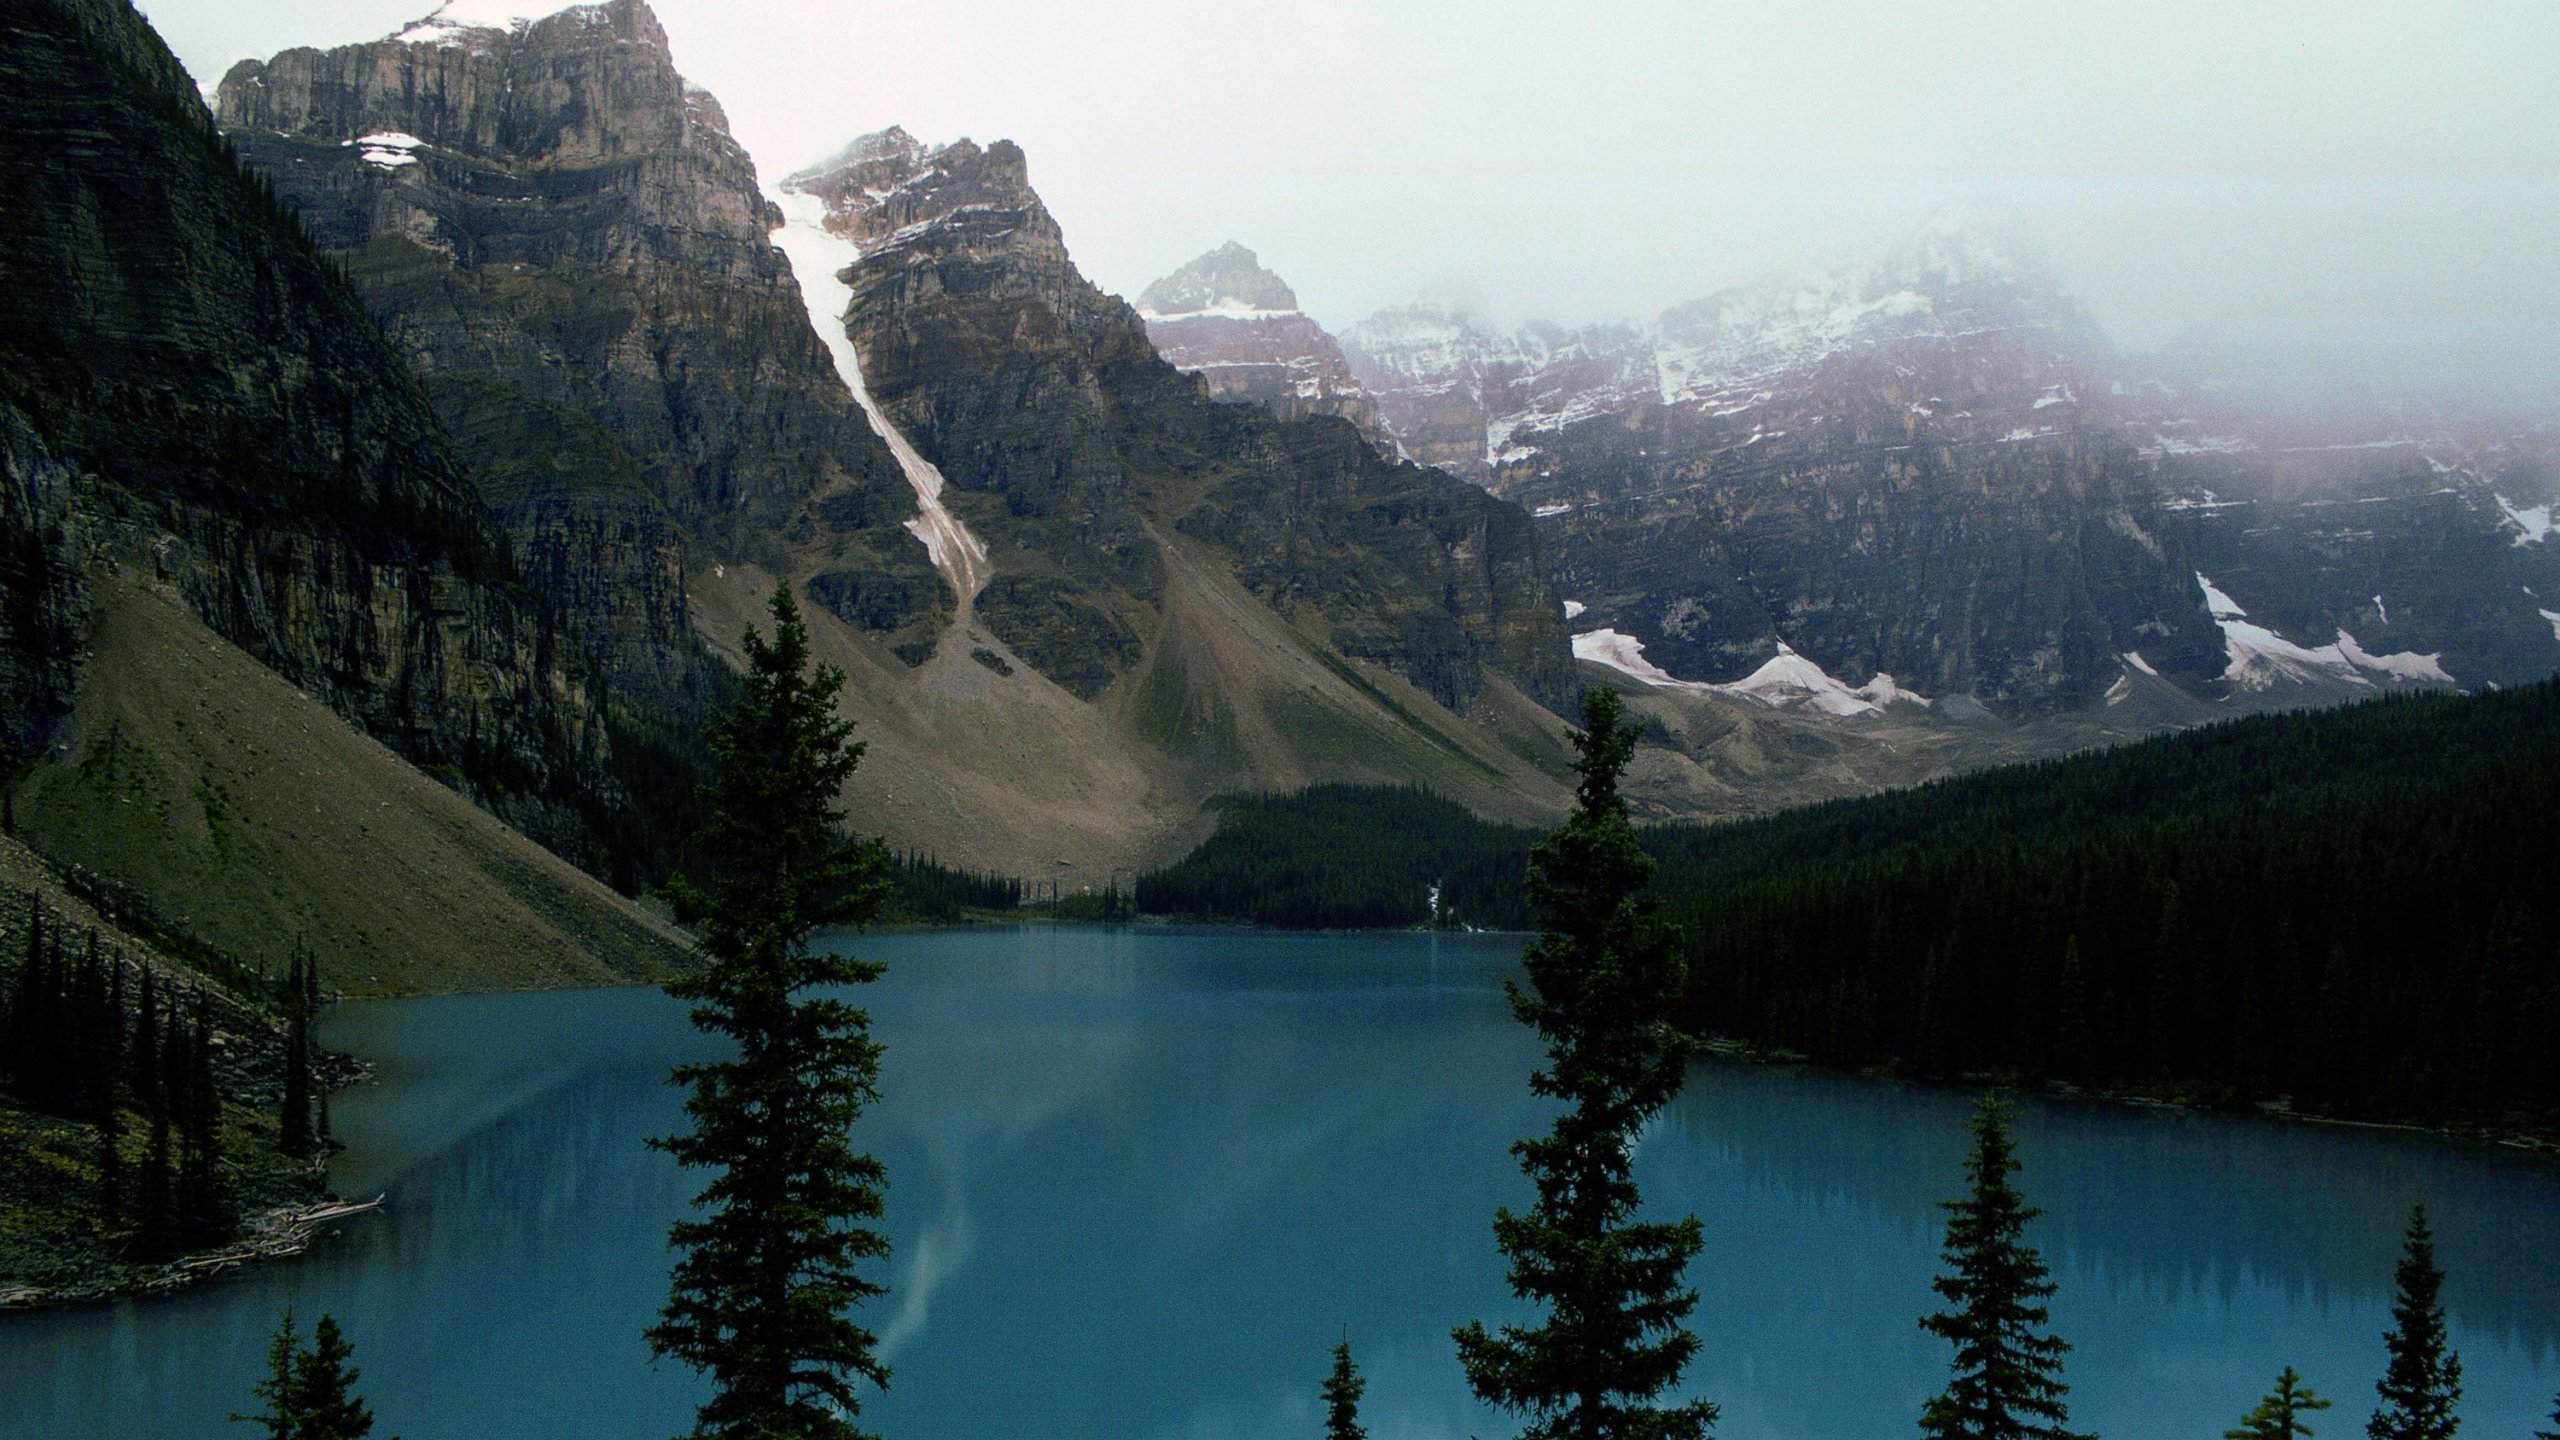 A view of Banff National Park is seen in this undated photo. (Credit: Tim Graham/Getty Images)